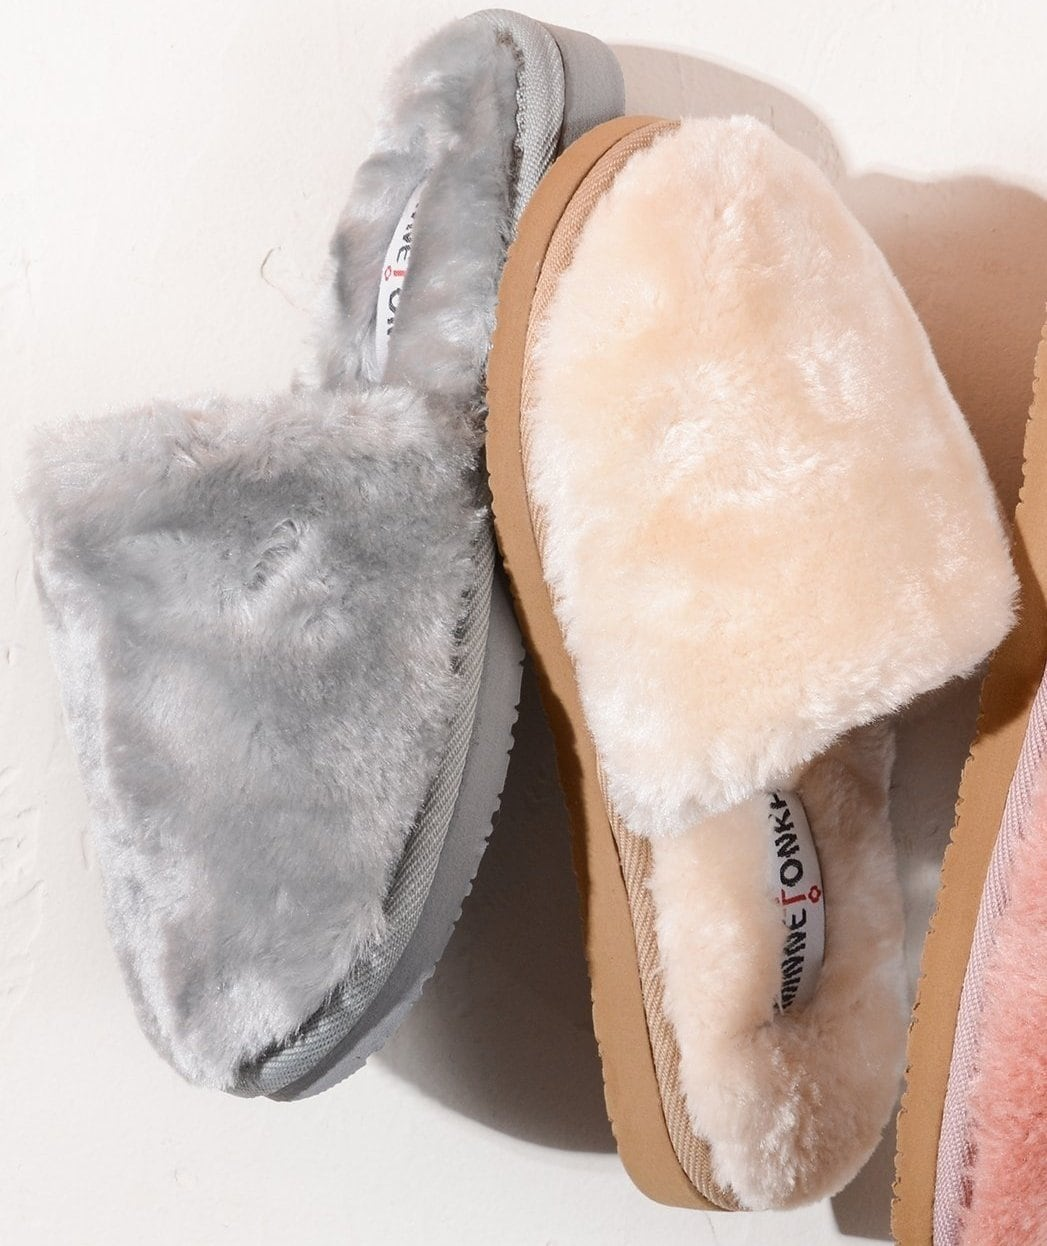 Minnetonka's plush, cozy Lora slippers reinvent the classic scuff silhouette with fluffy faux fur and gorgeous color options